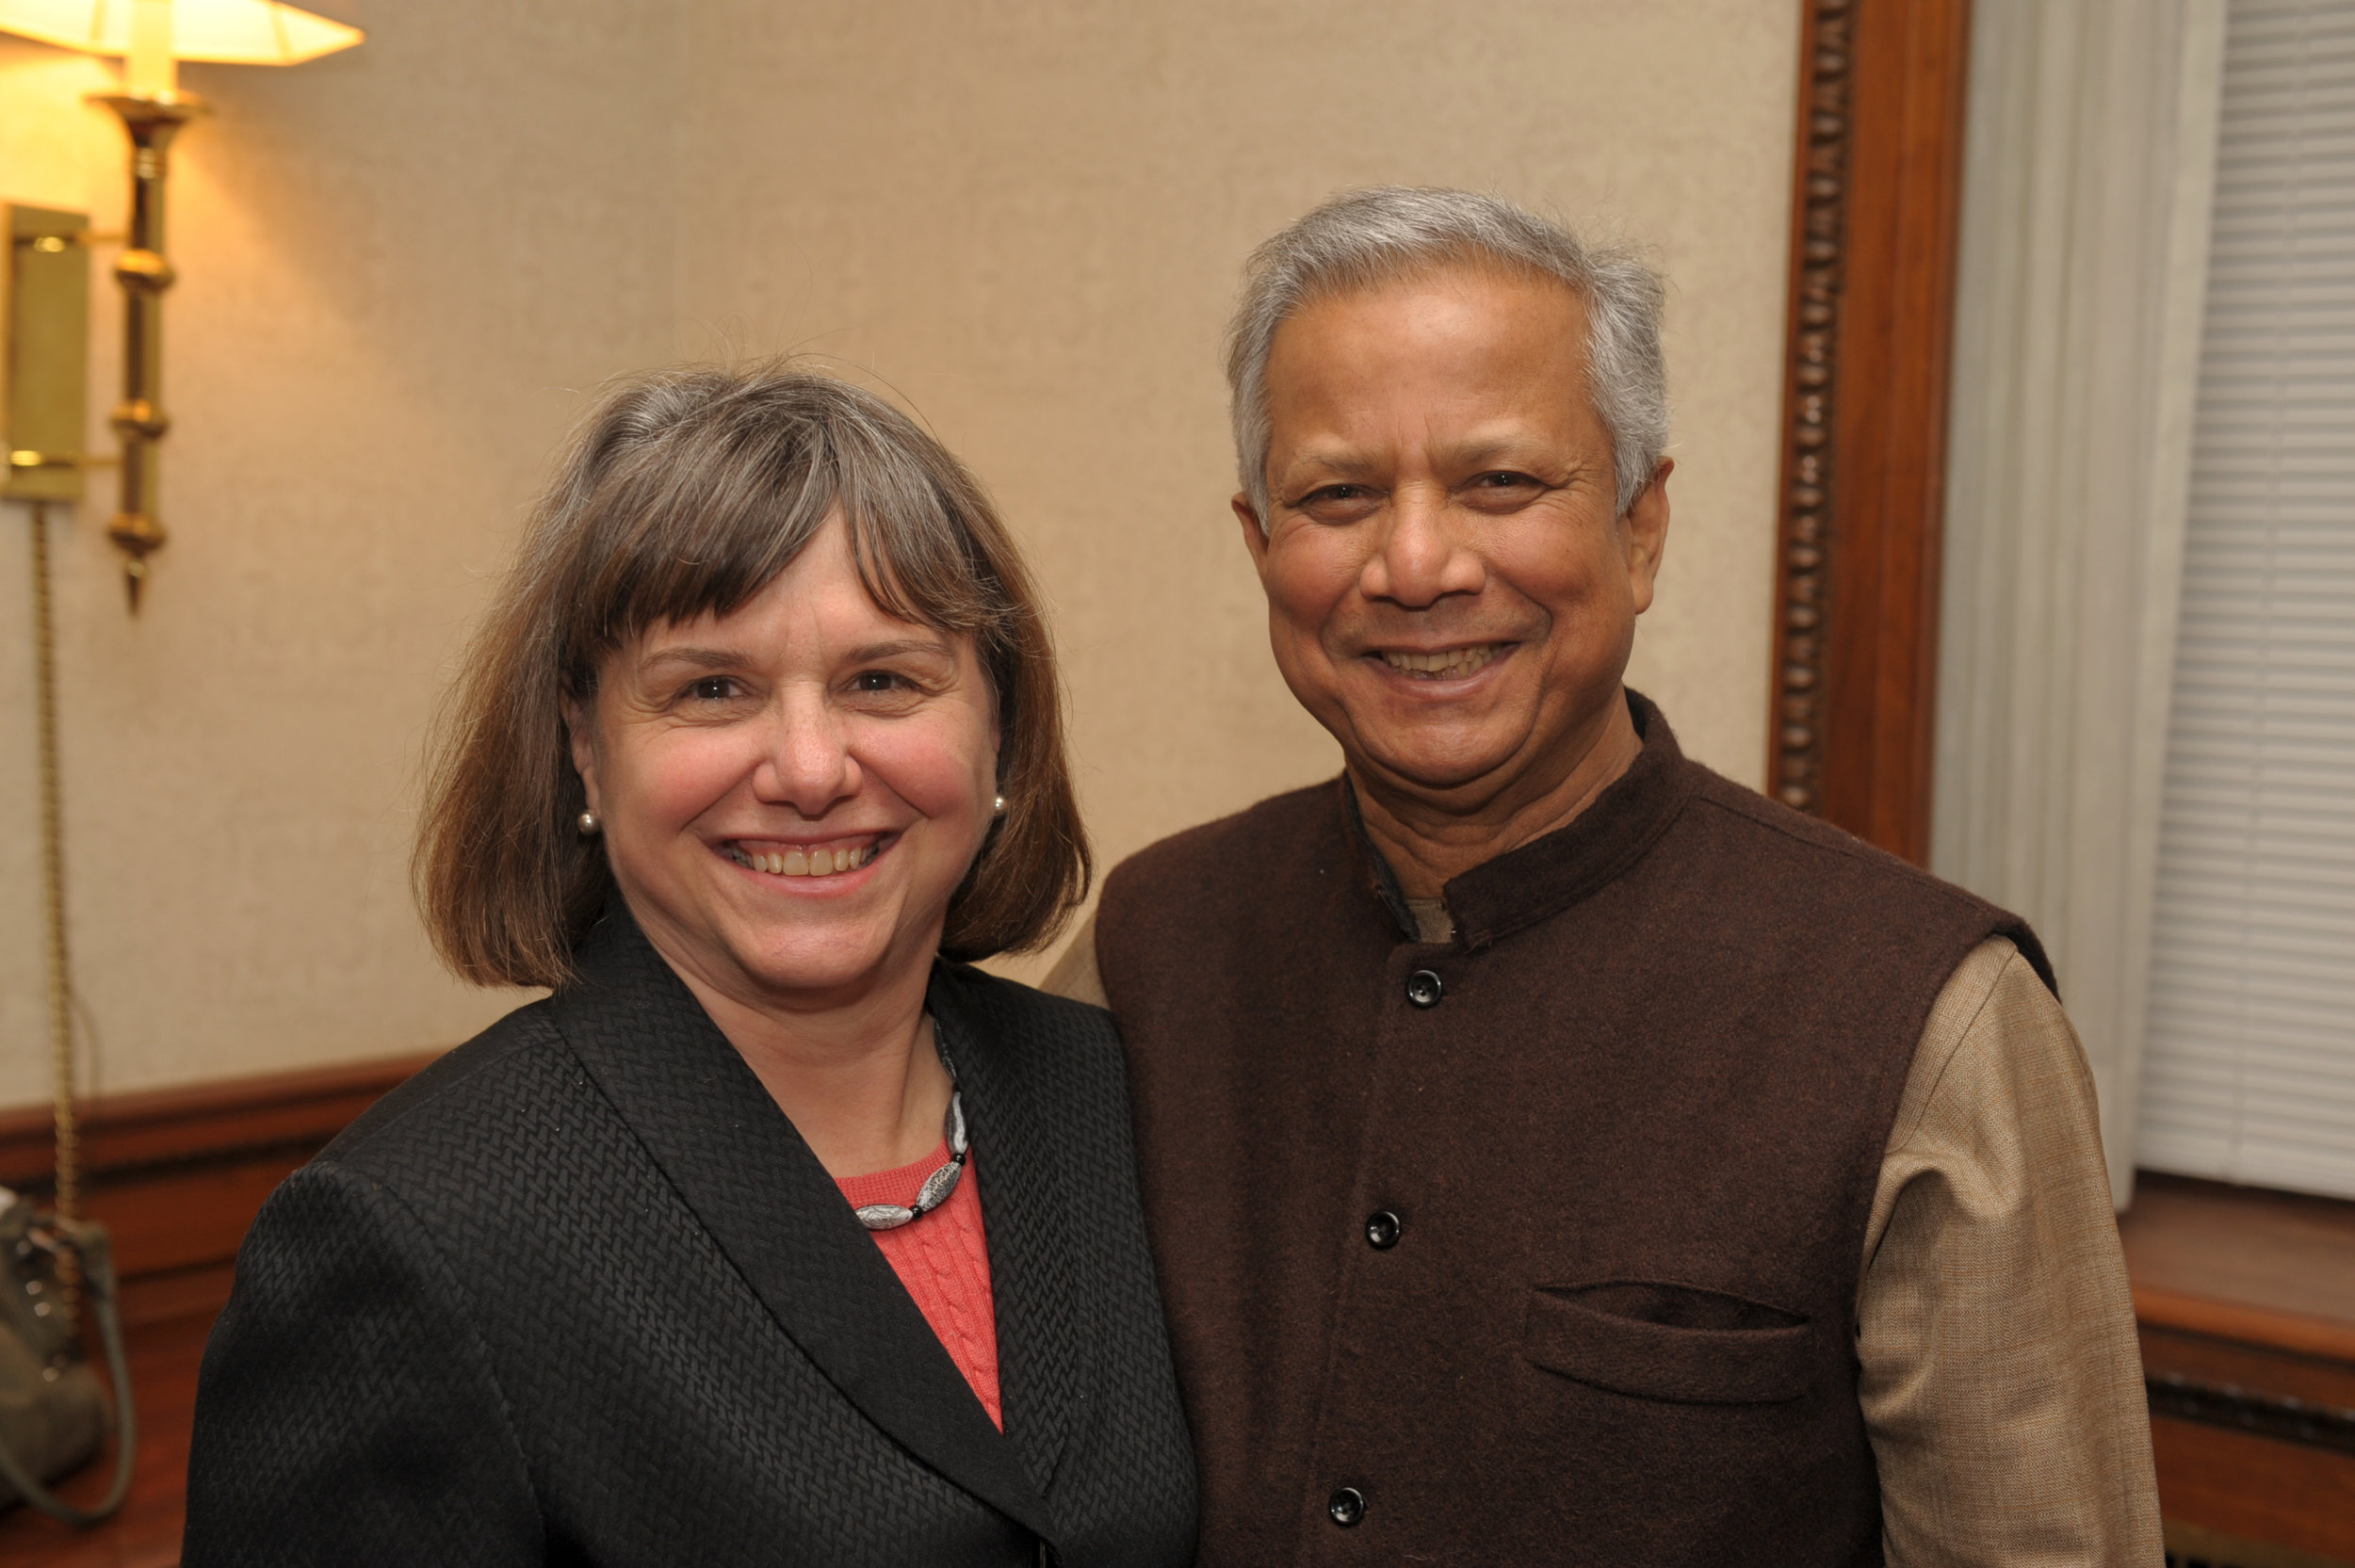 Introducing Dr. Mohammad Yunis of Grameen Bank at the Syracuse University Speaker Series (2010)